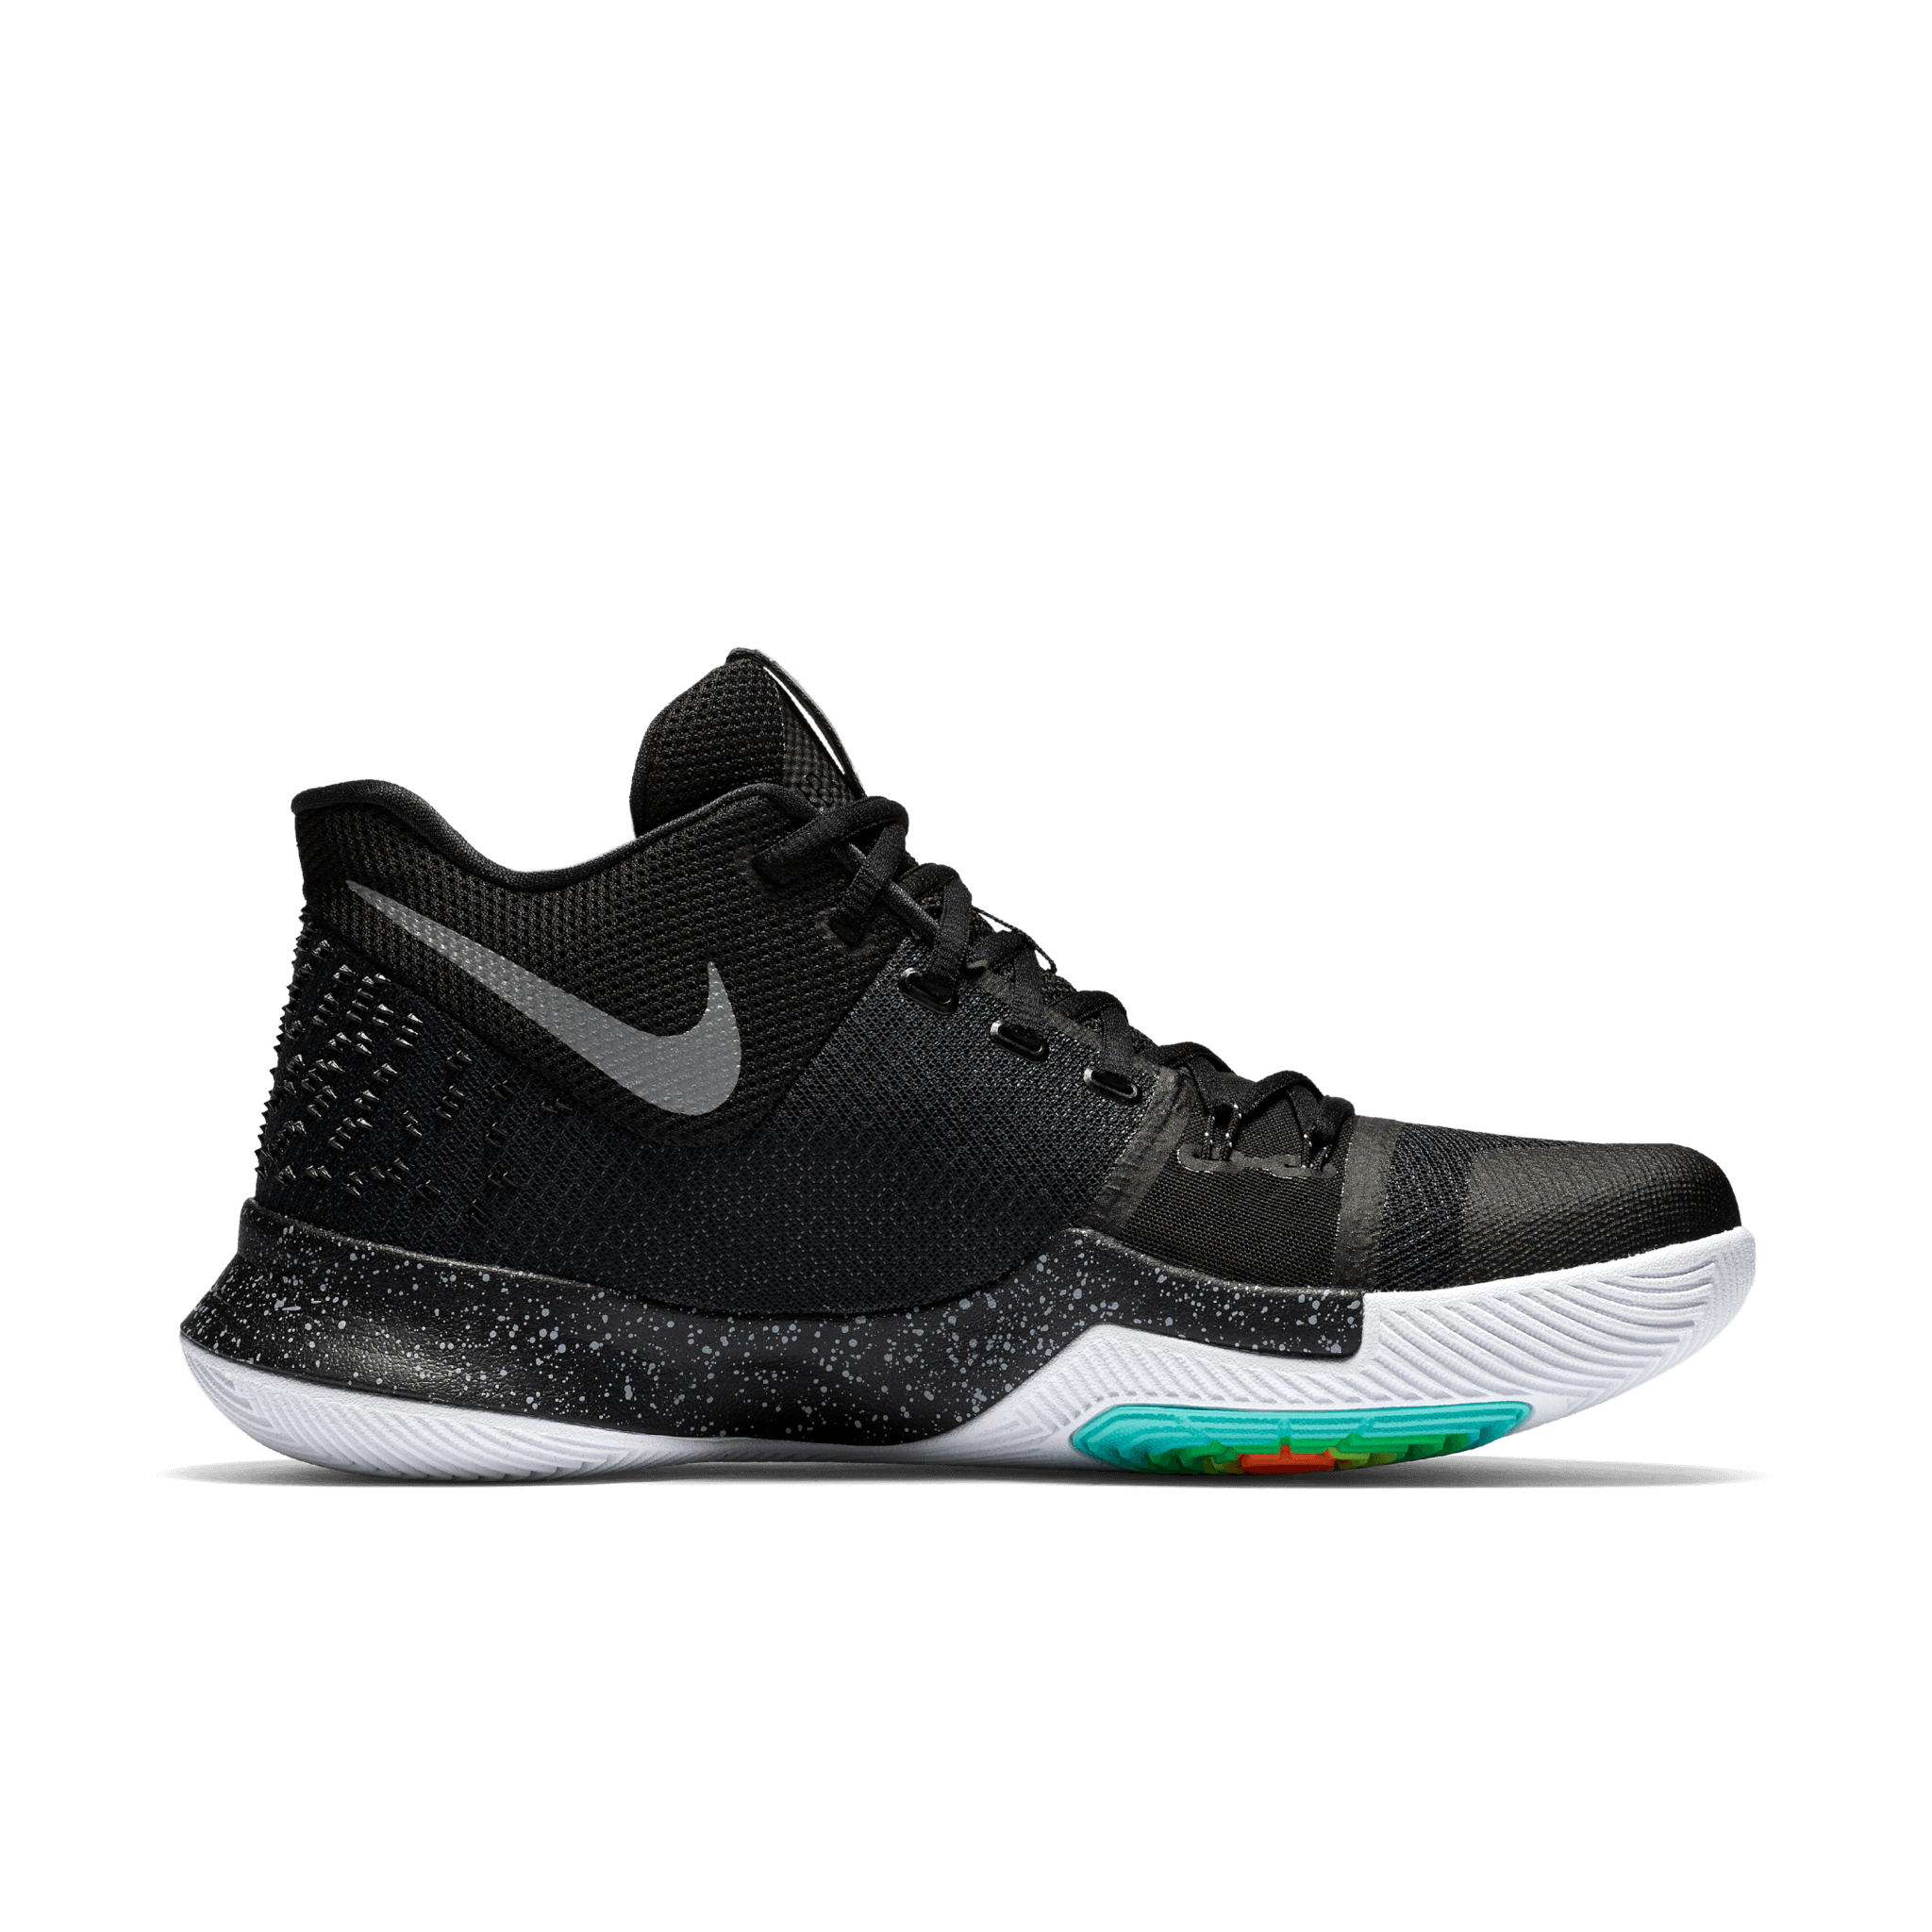 e779721fdcf14c Nike Kyrie 3 Performance Review